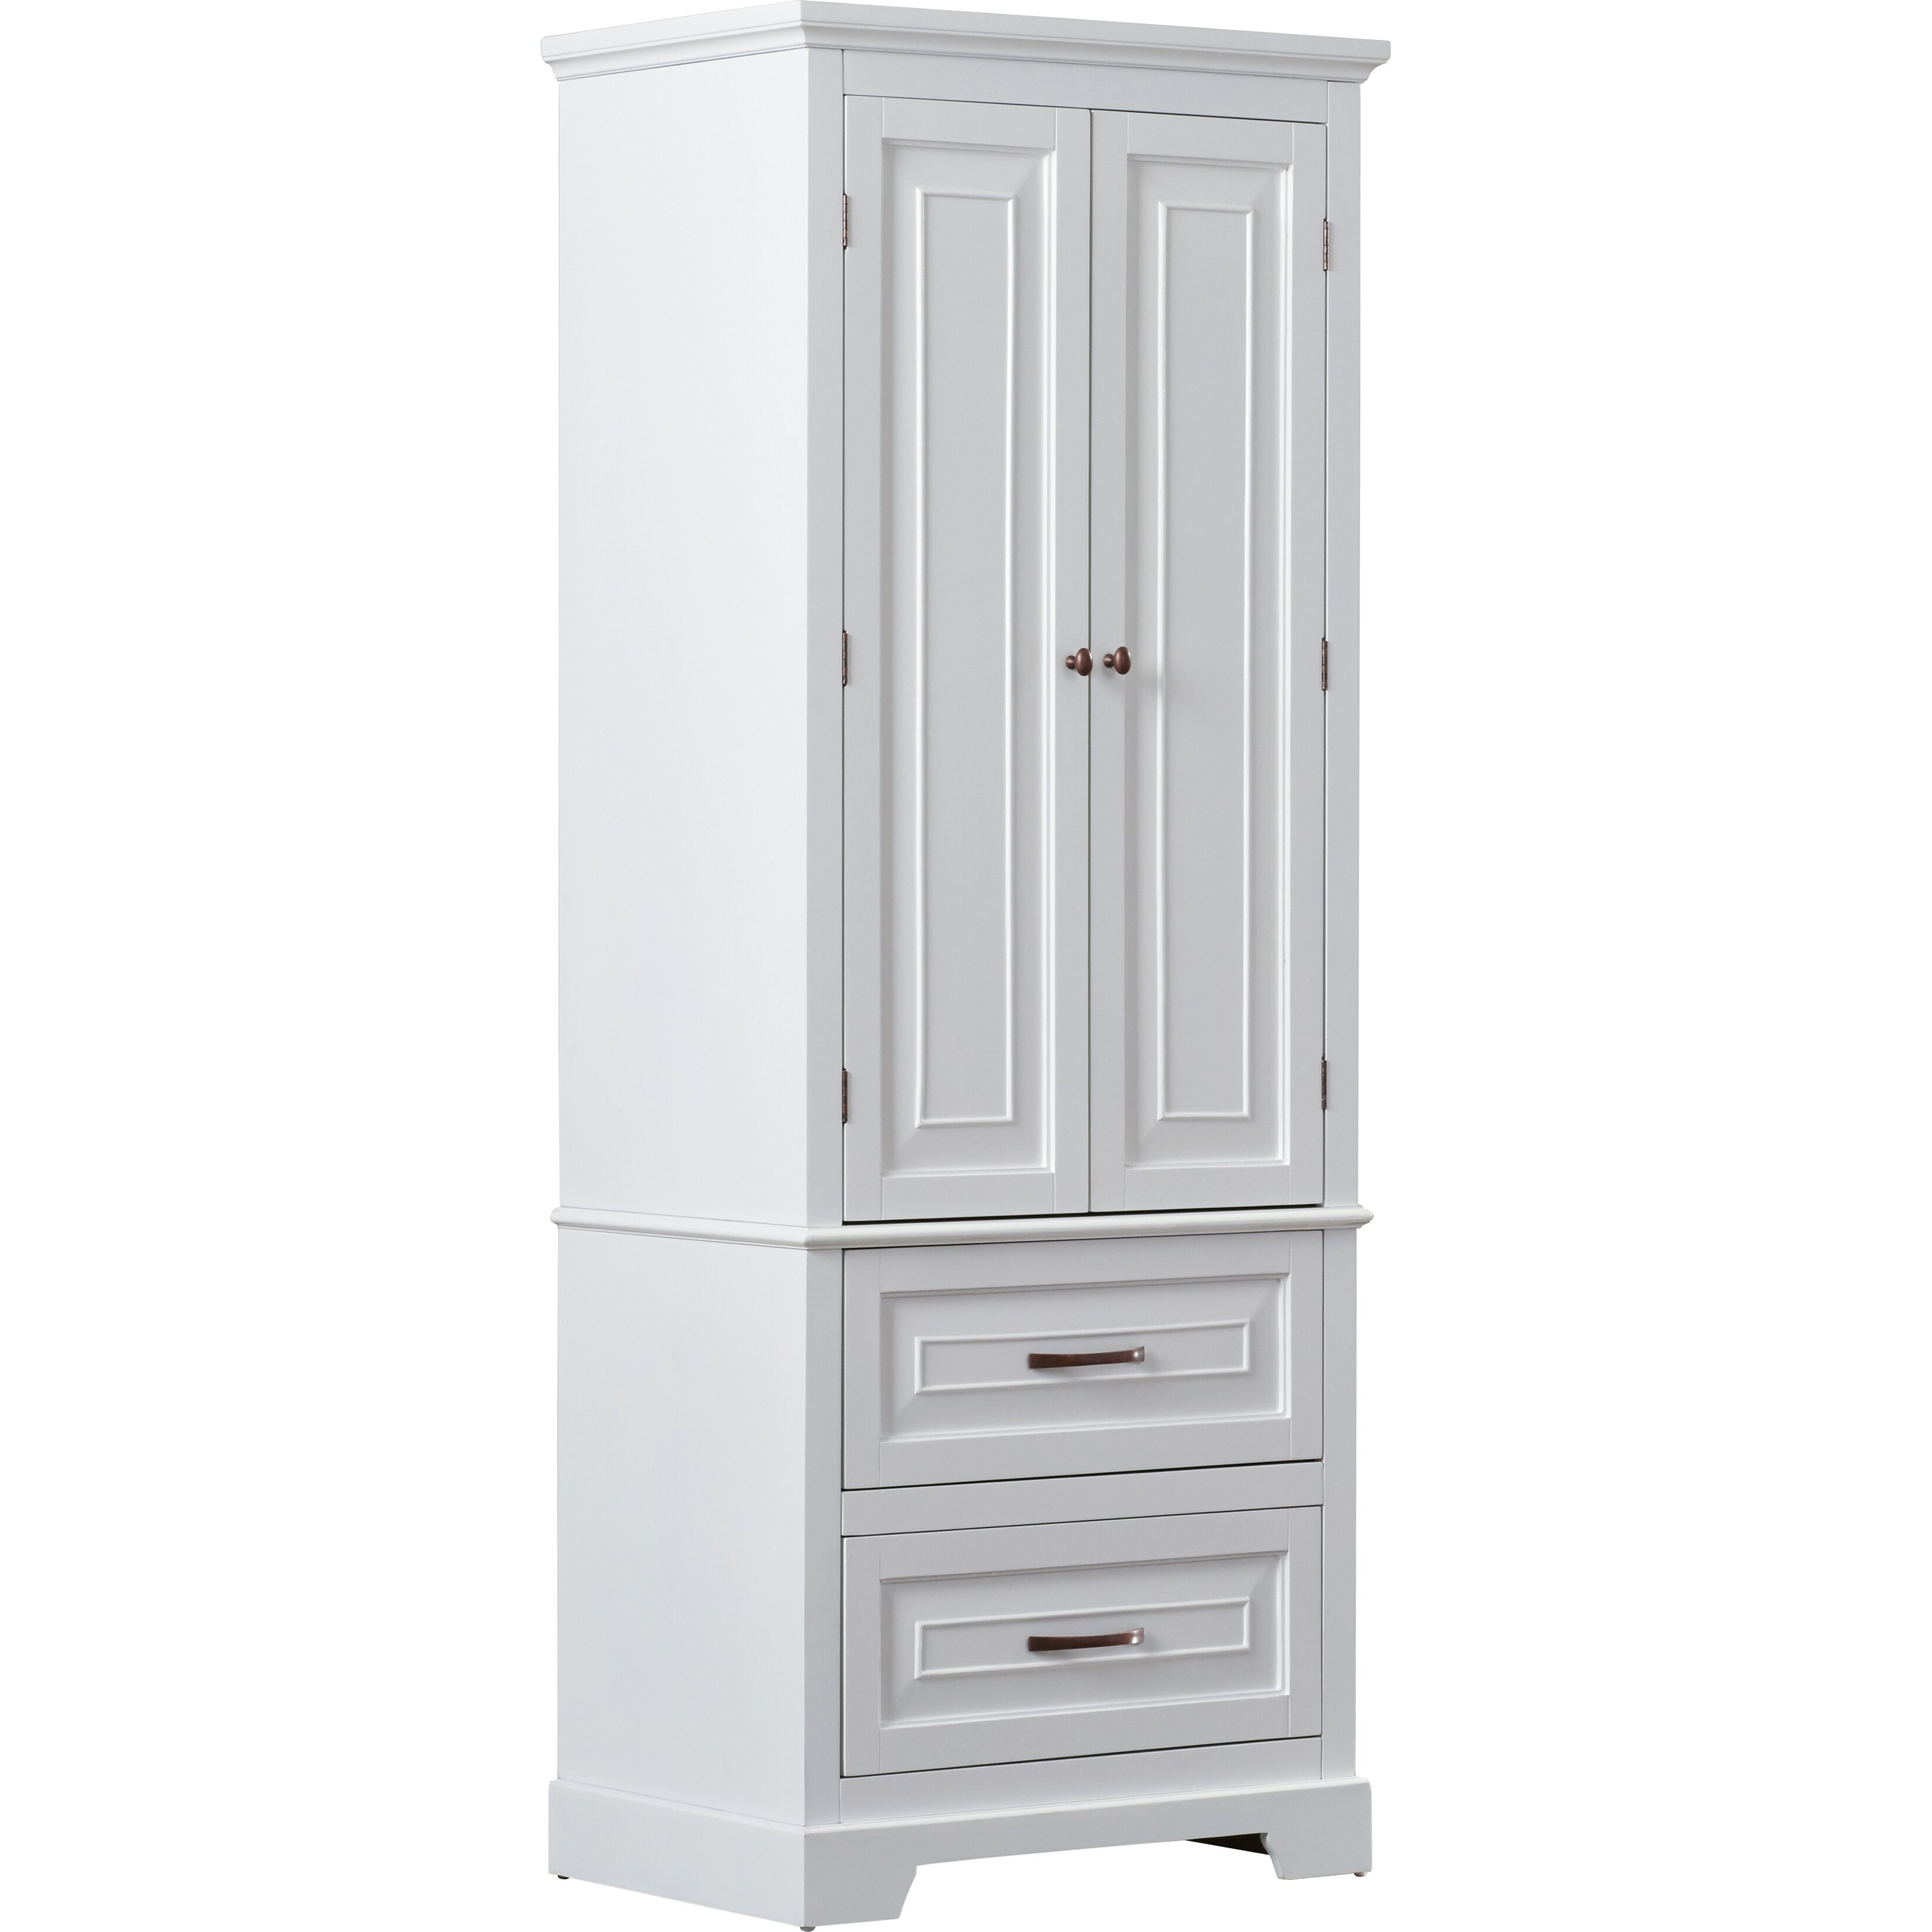 Alcott hill prater 24 x 62 free standing cabinet for Wayfair kitchen cabinets